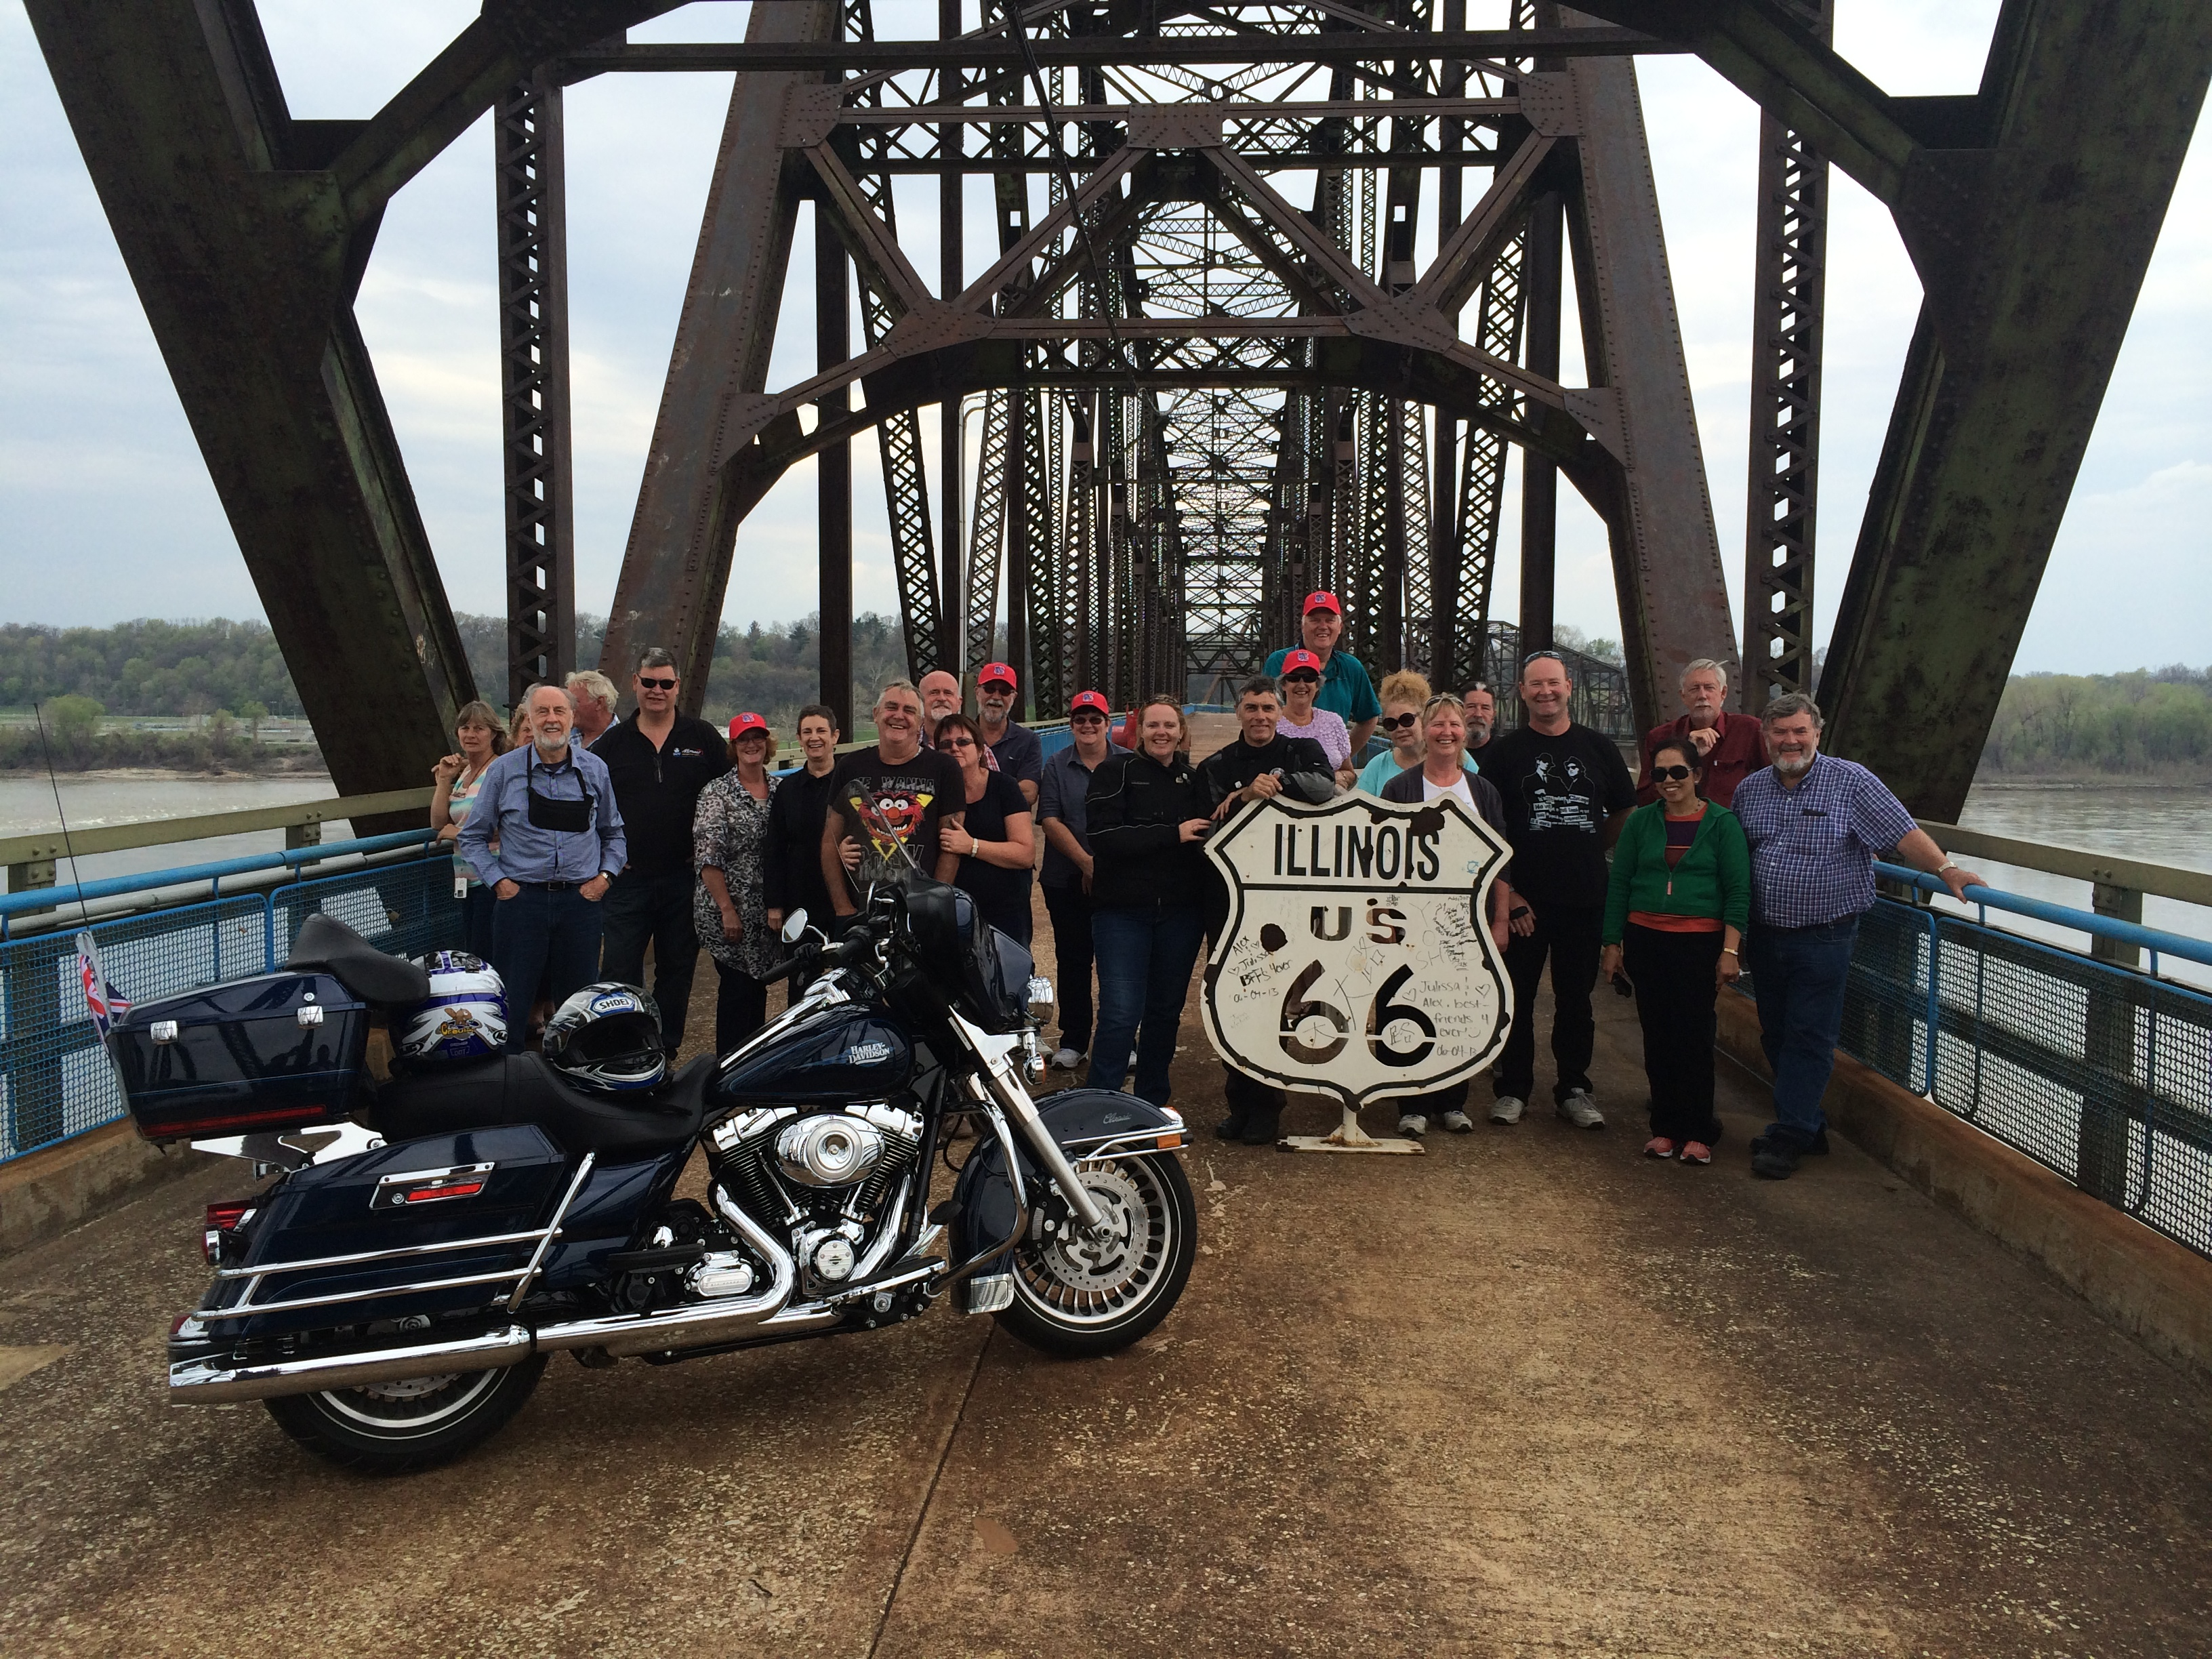 Tour America with Route 66 Tours